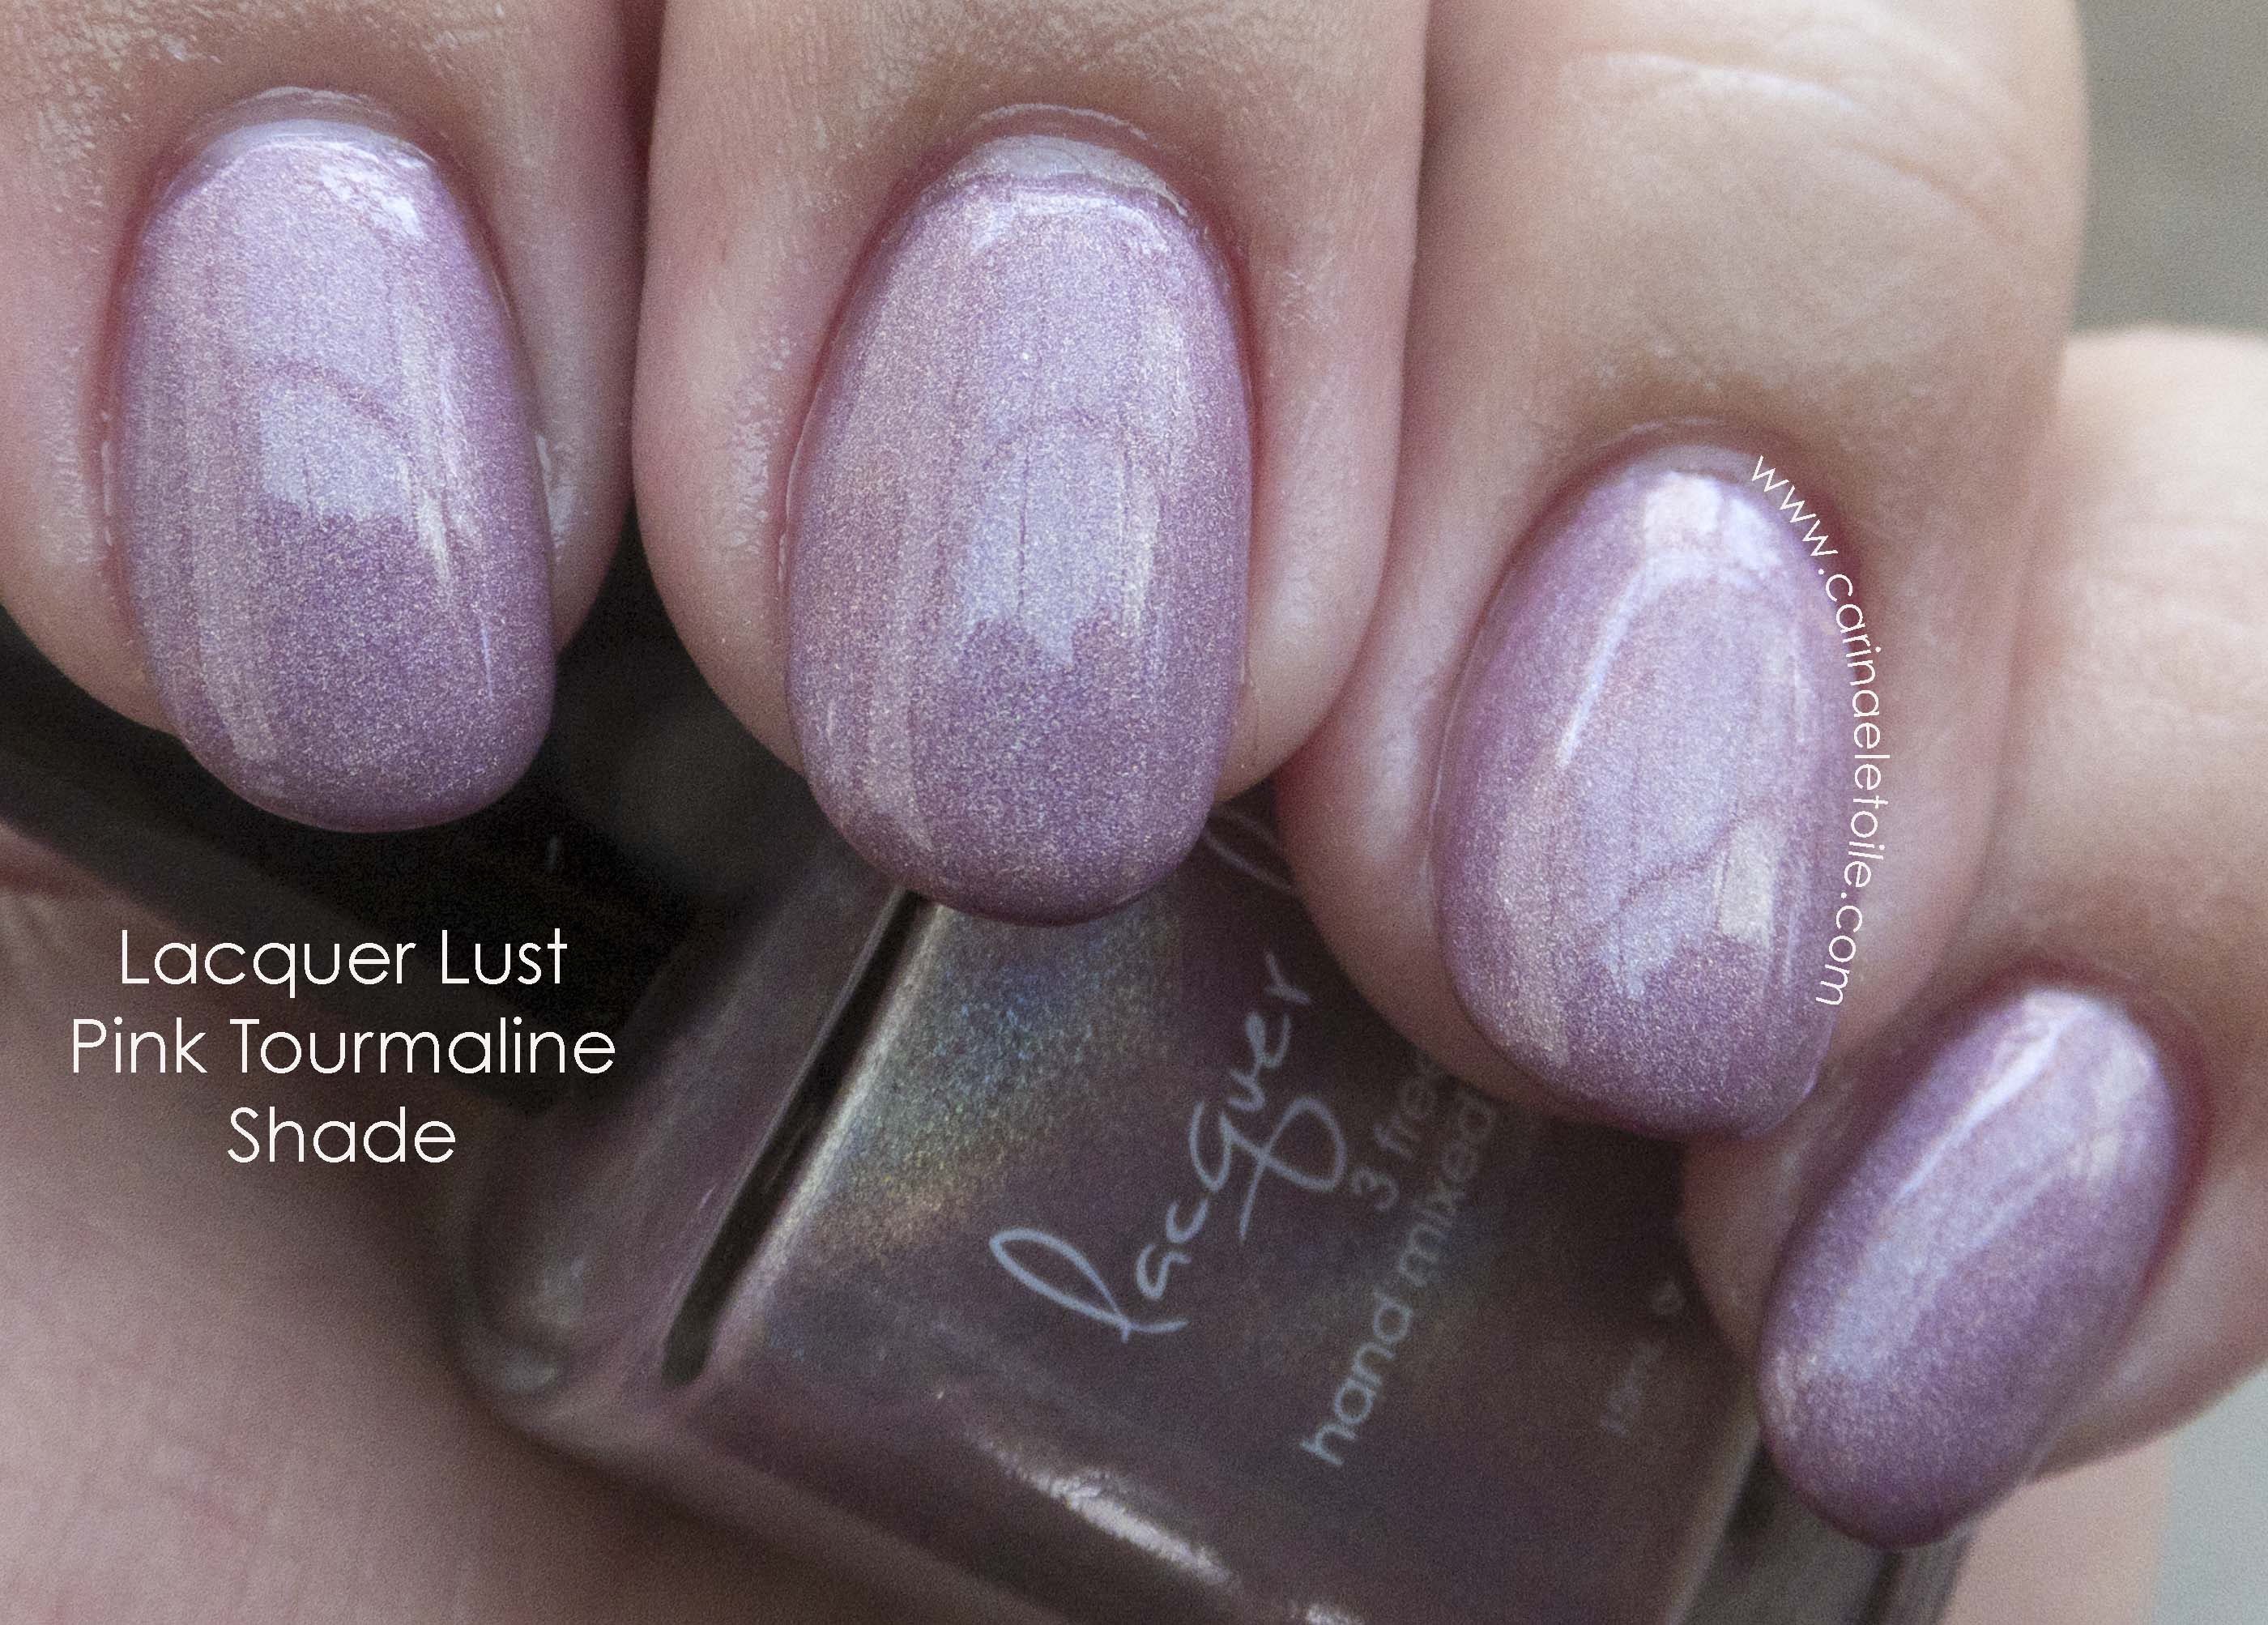 Lacquer Lust Pink Tourmaline